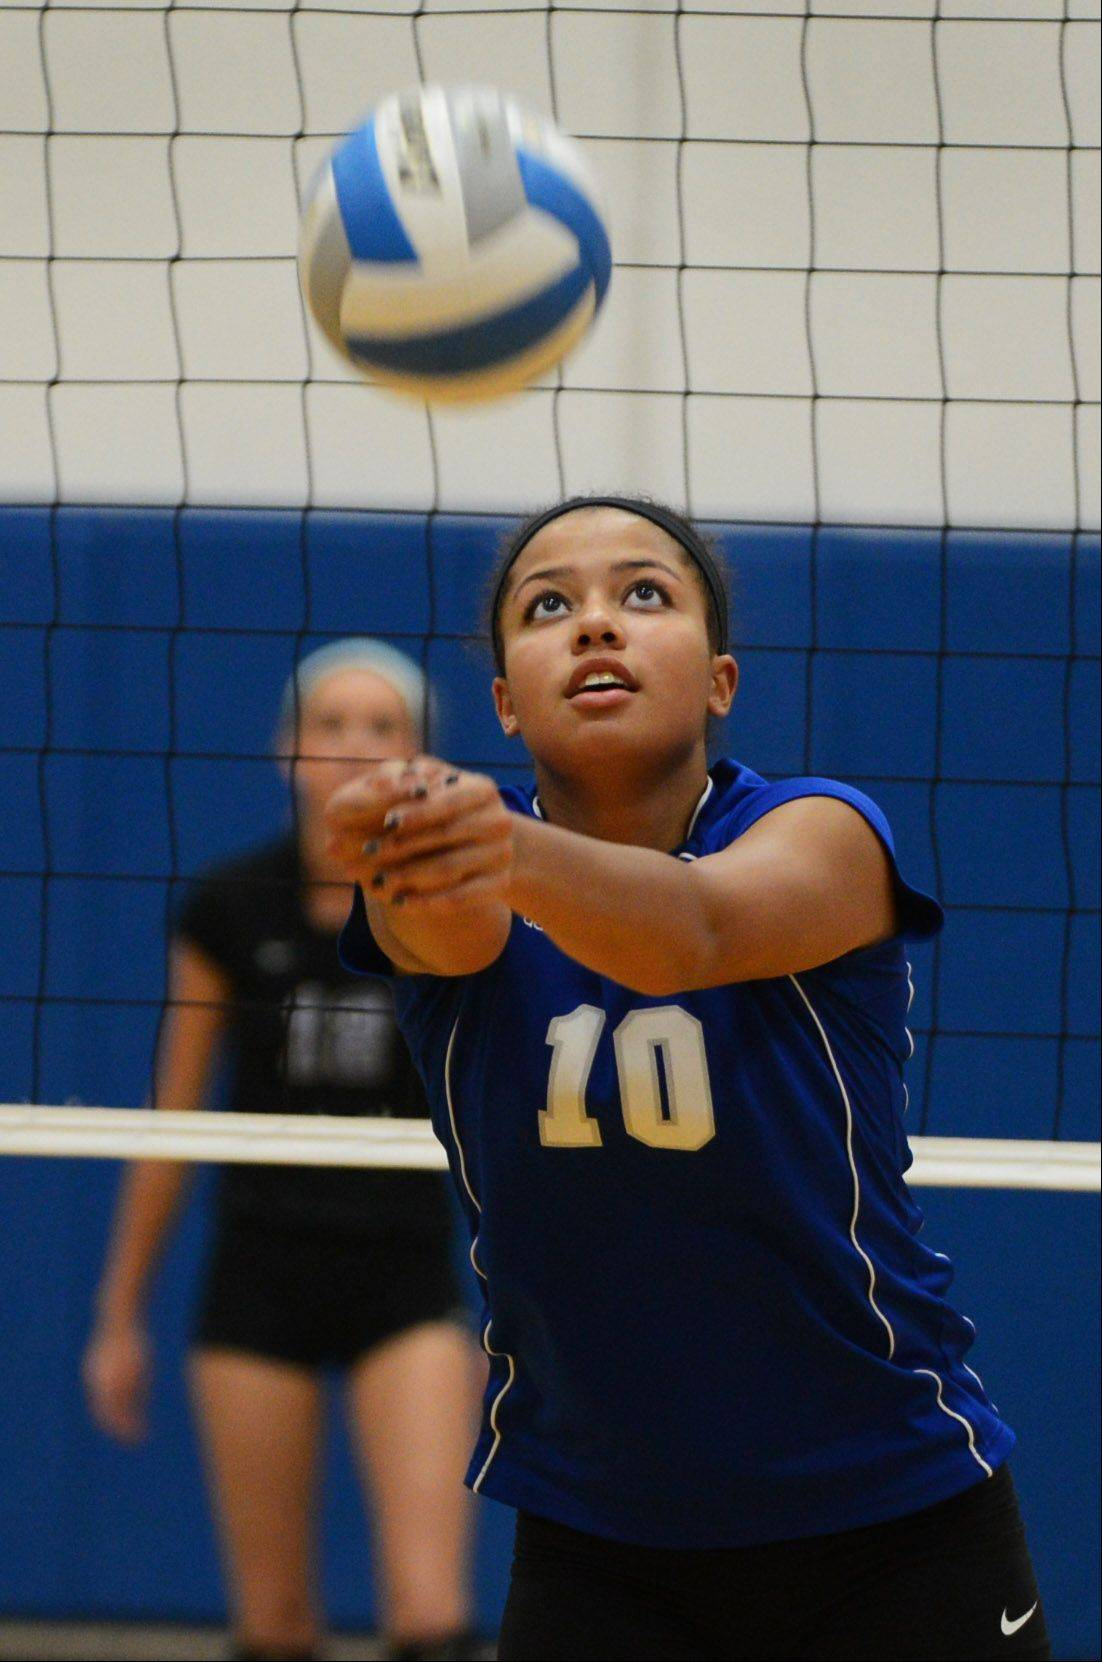 Vernon Hills' Tori Smith sets the ball during Wednesday night's volleyball match against visiting Lakes High School.